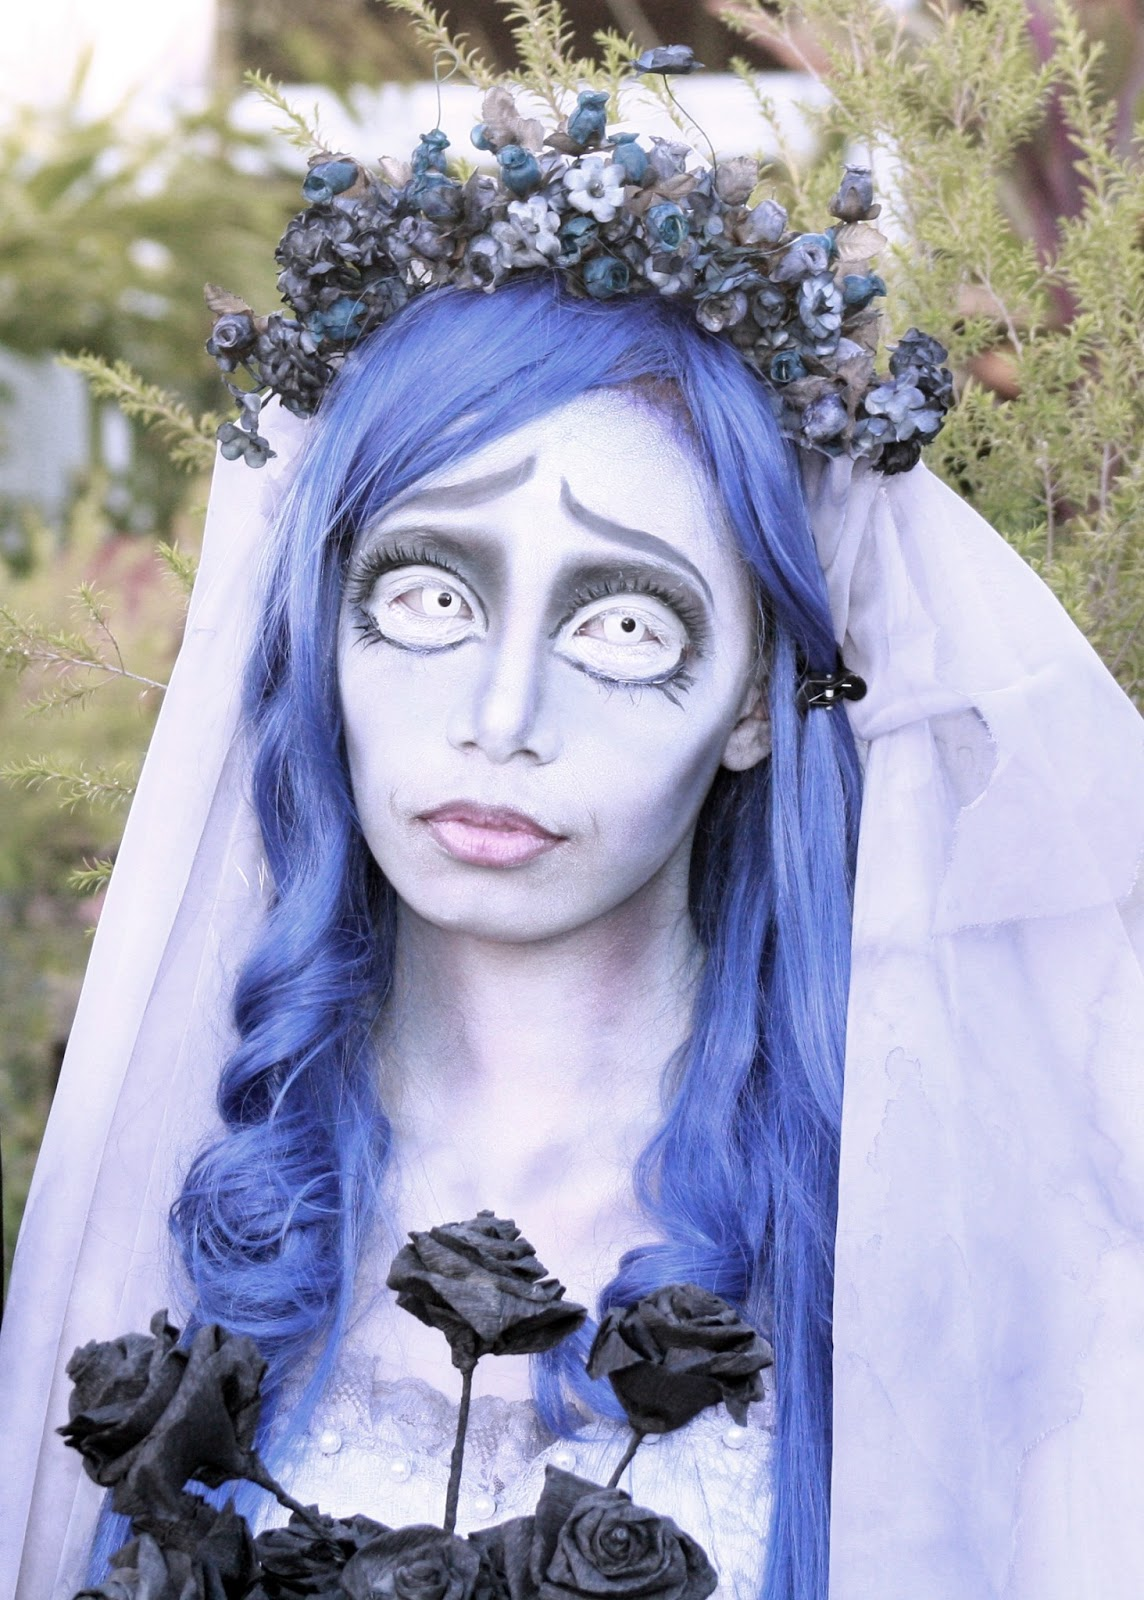 Oishari diy corpse bride cosplay 9513 solutioingenieria Image collections